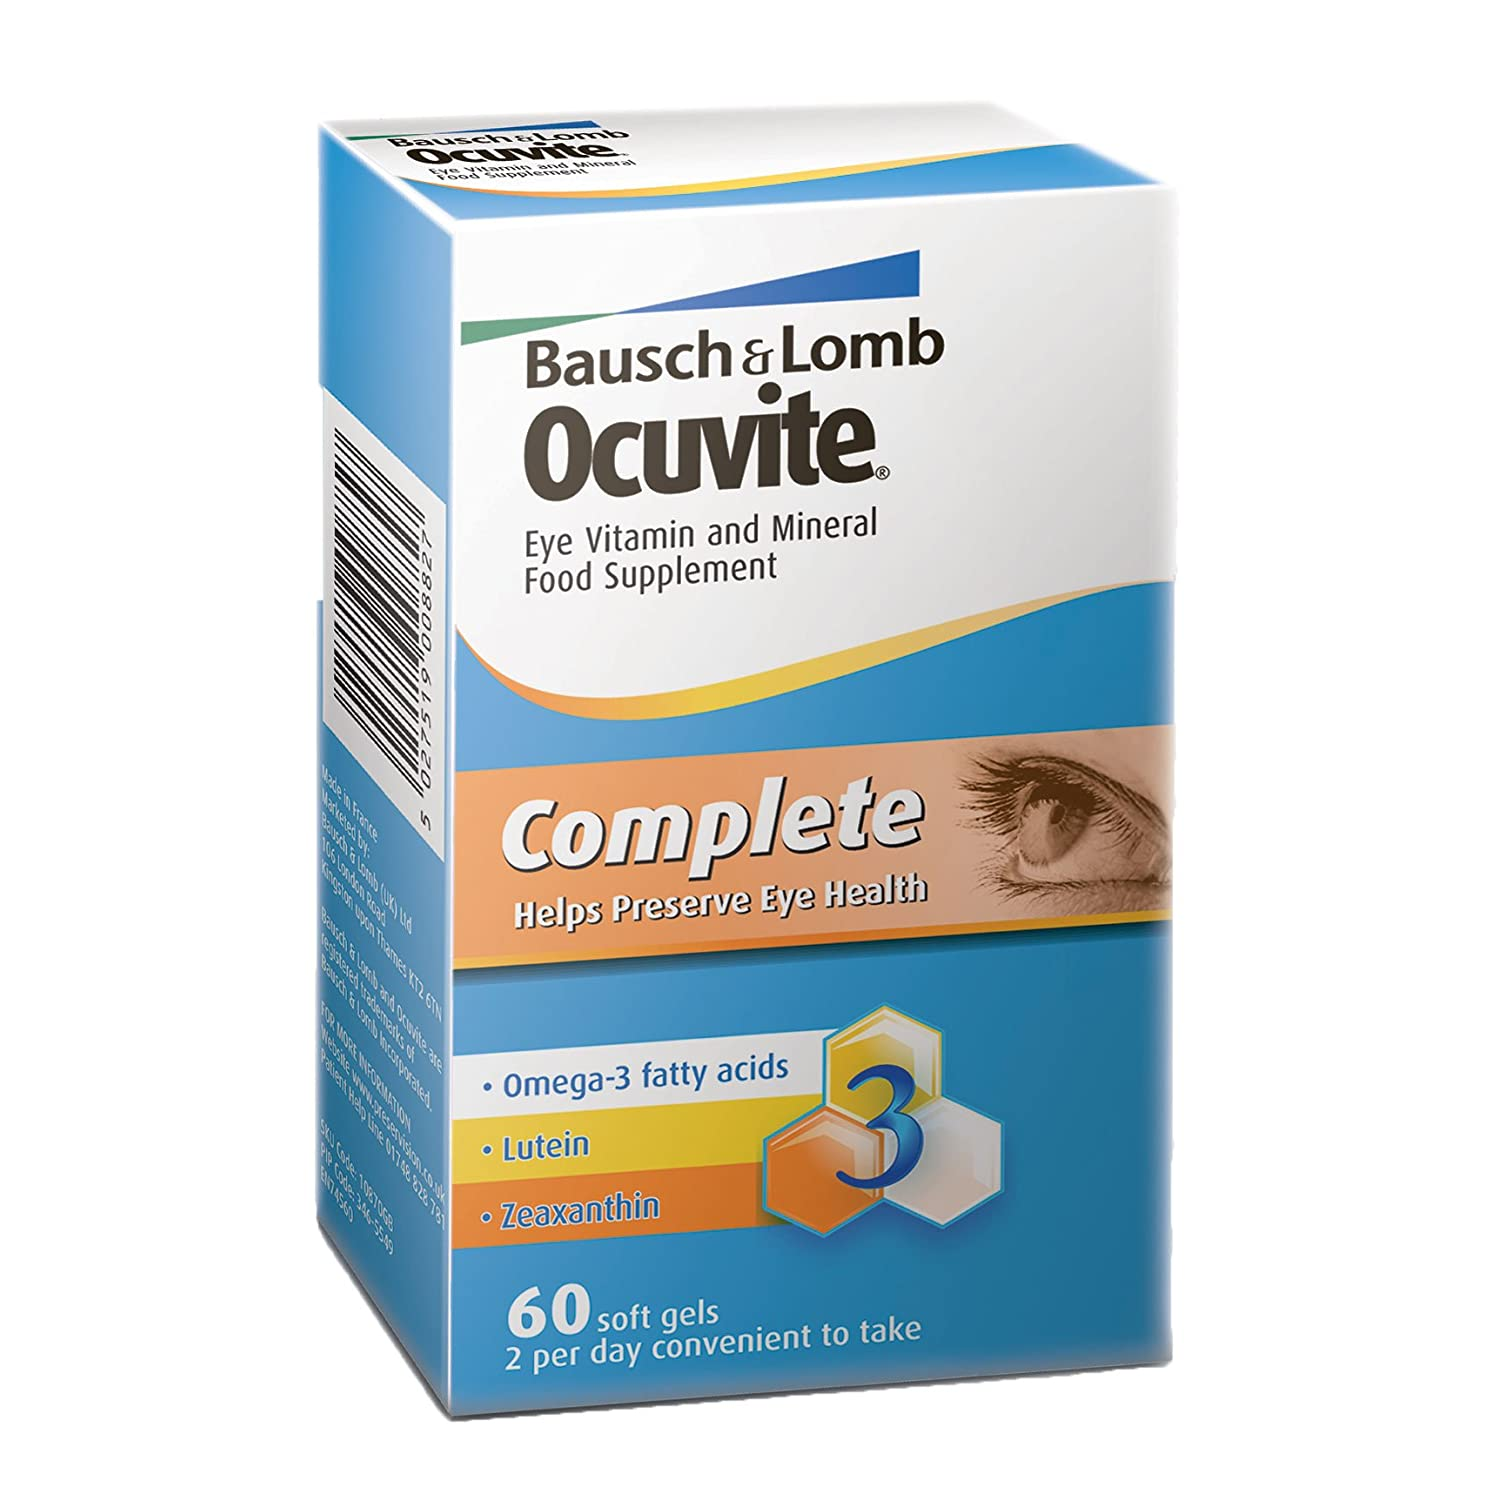 What is in ocuvite vitamins